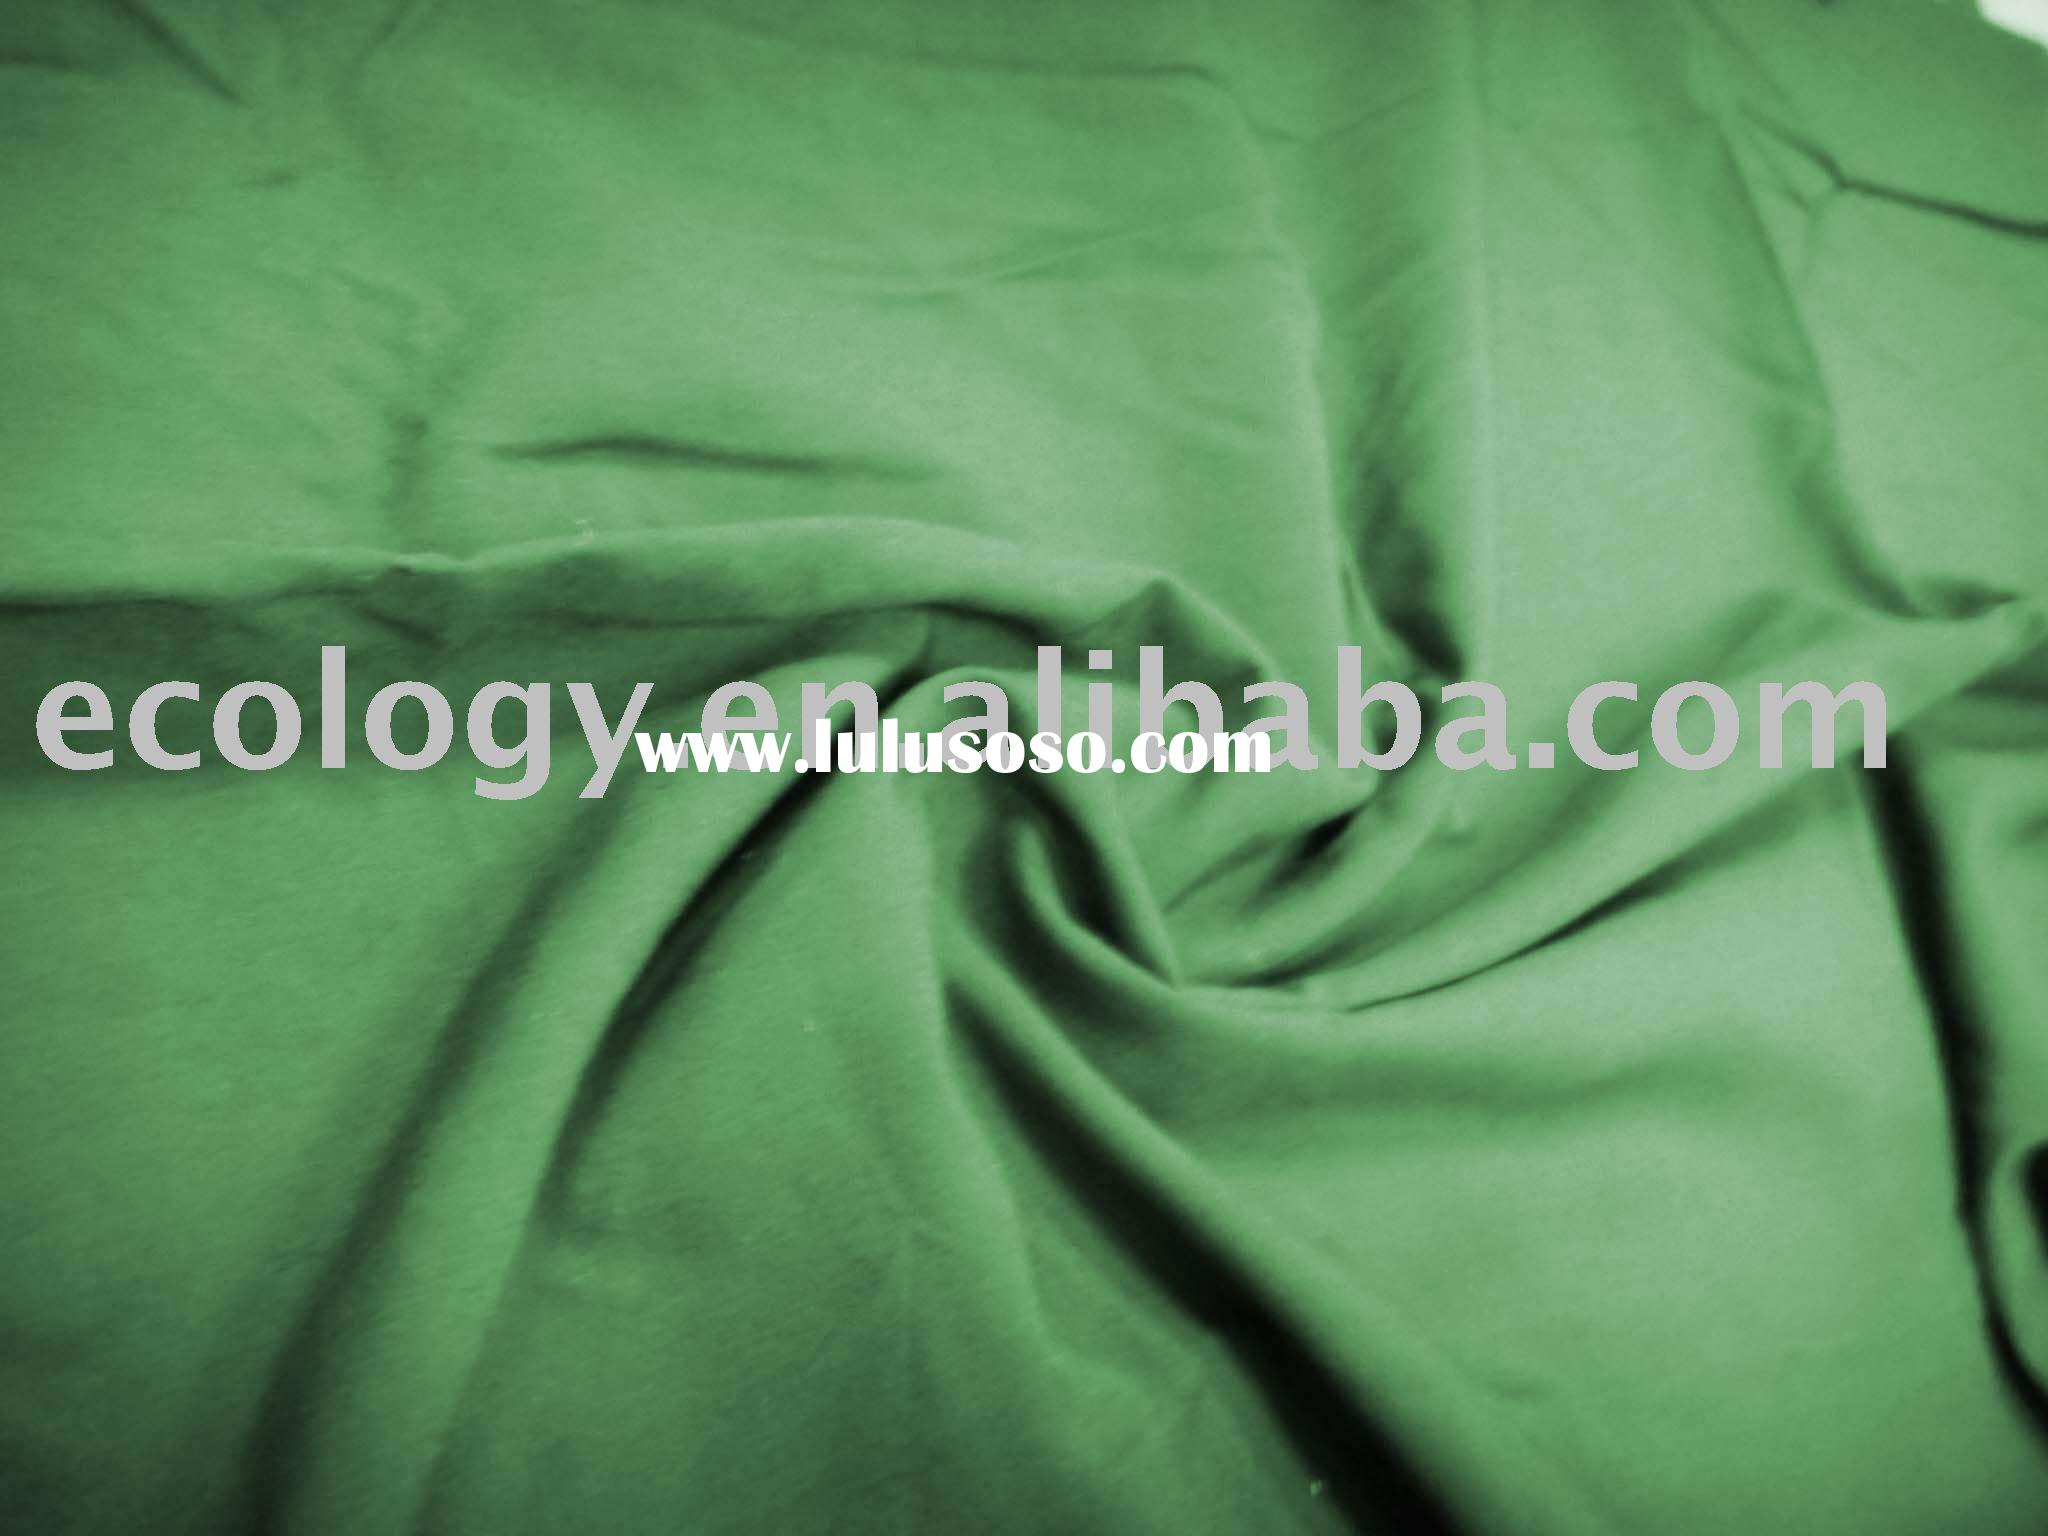 70/30 organic cotton bamboo fabric